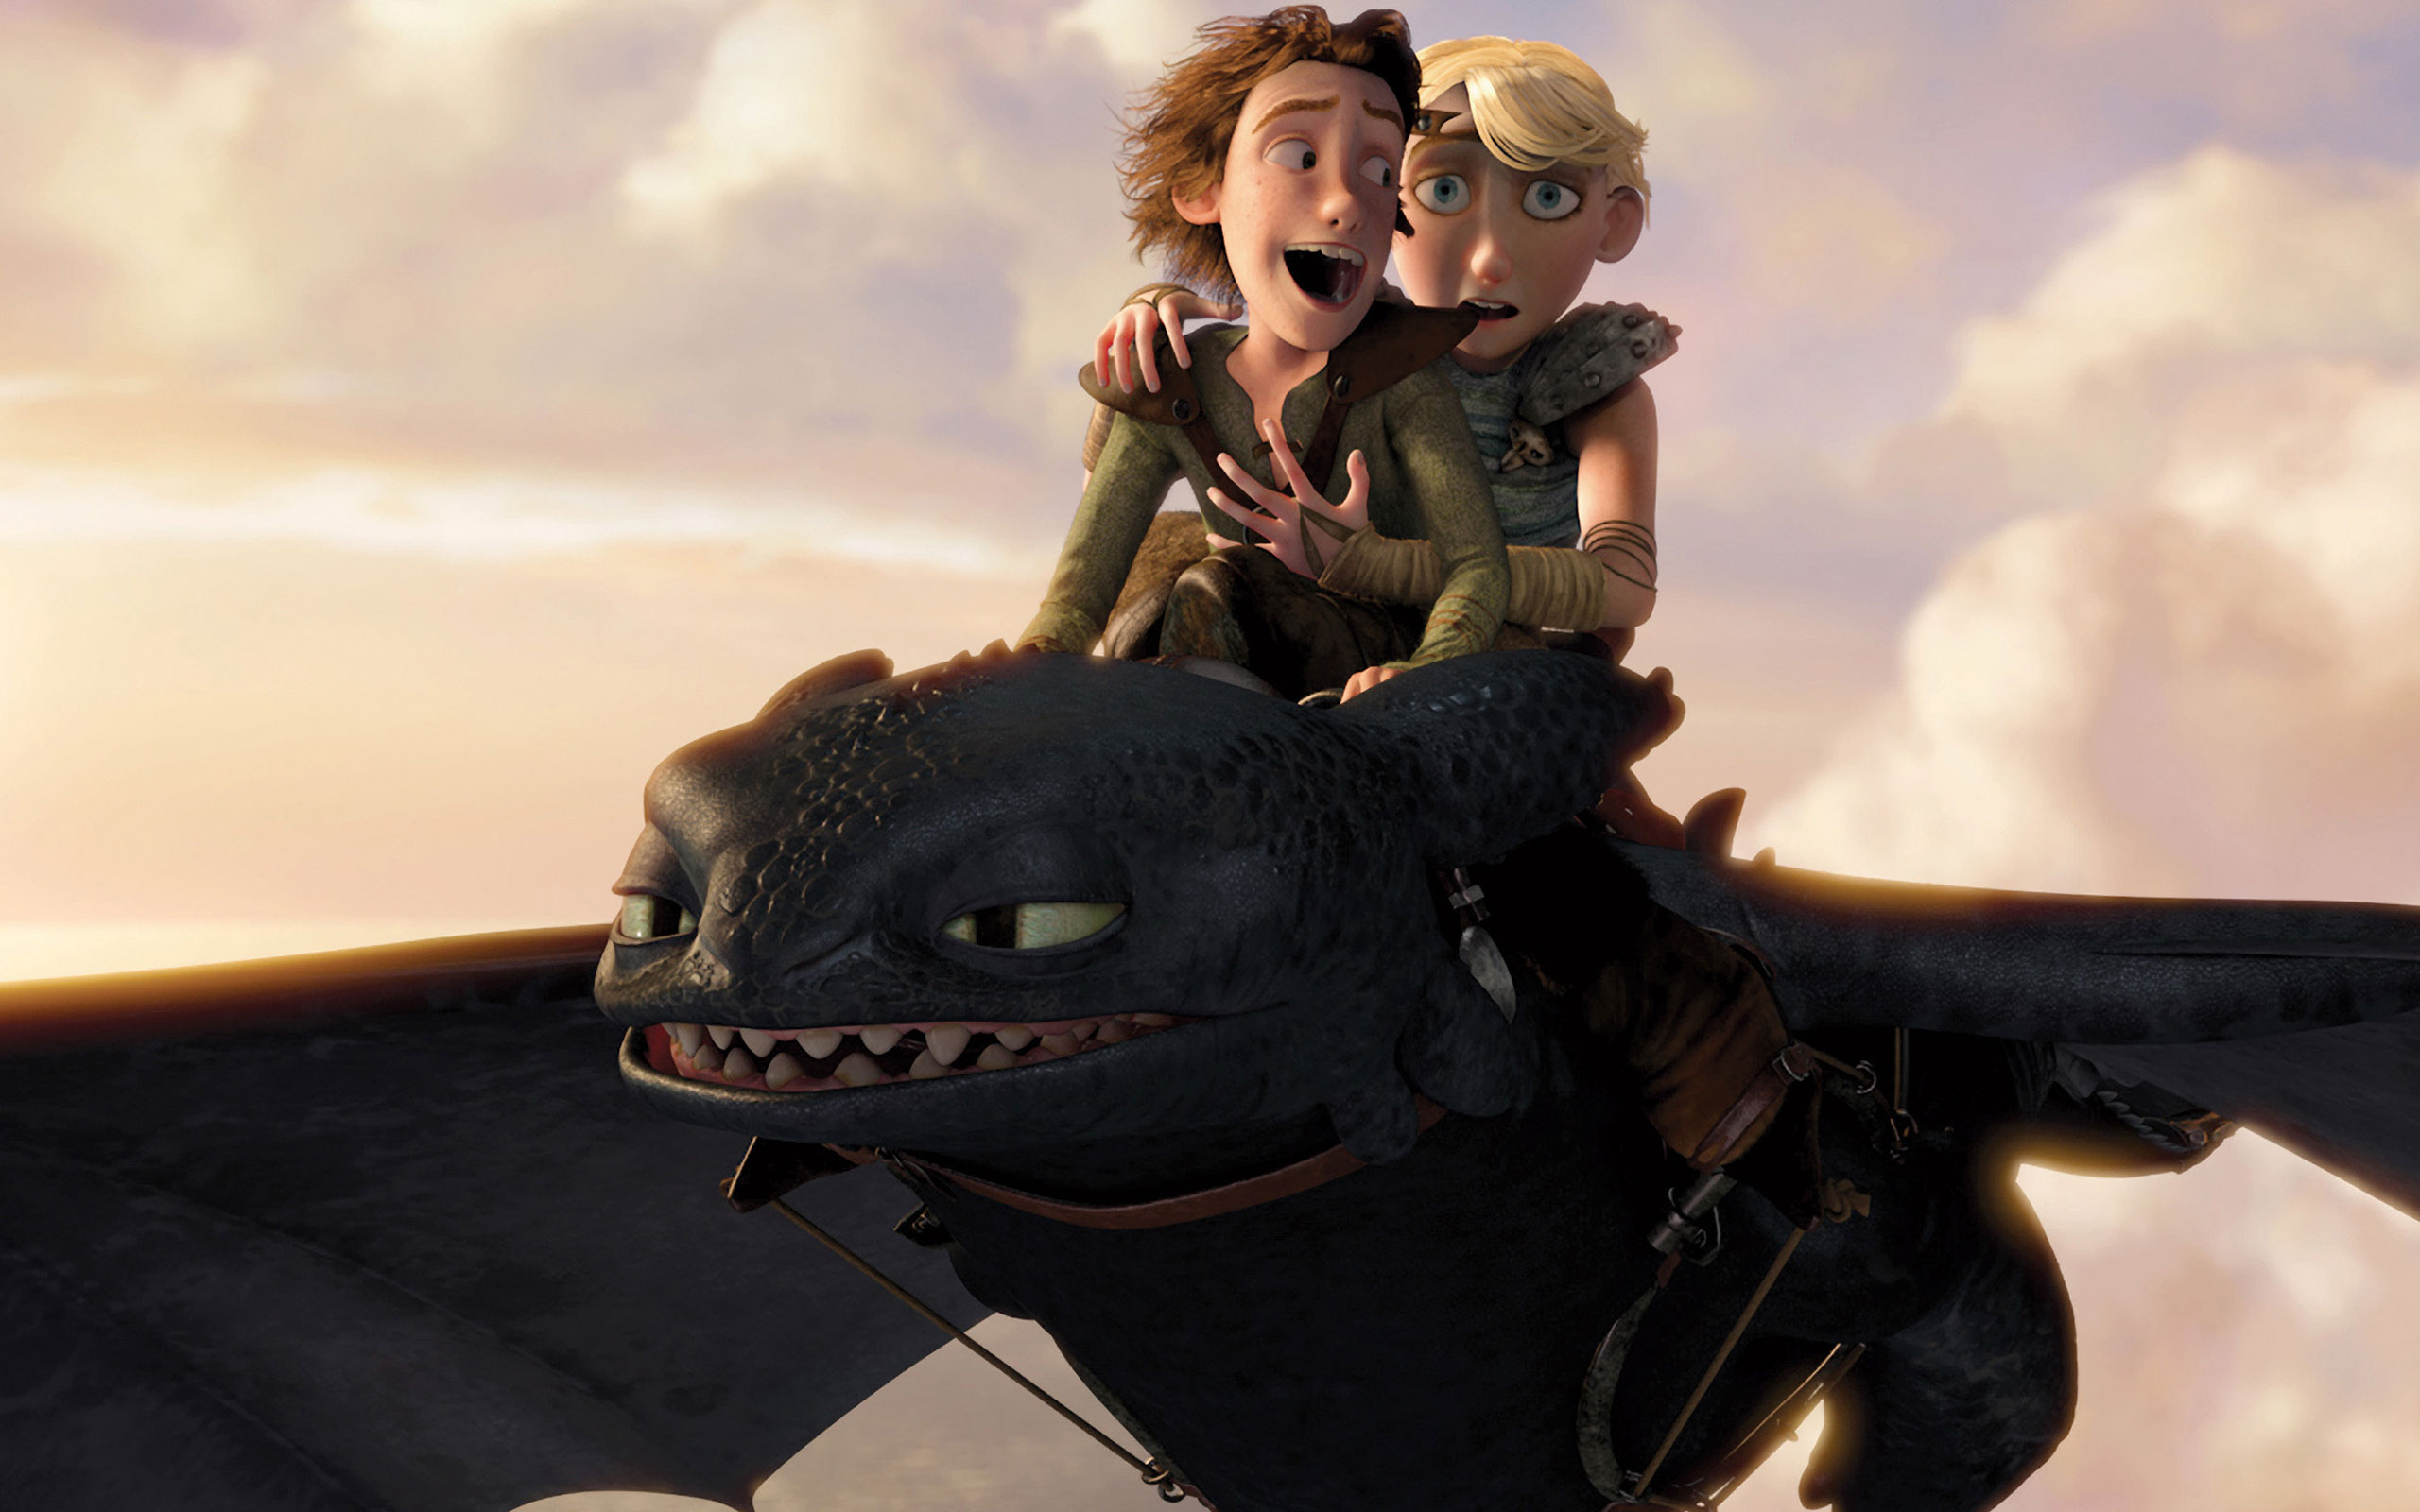 Dragon Toothless Cute Wallpaper How To Train Your Dragon Full Hd Wallpaper And Background